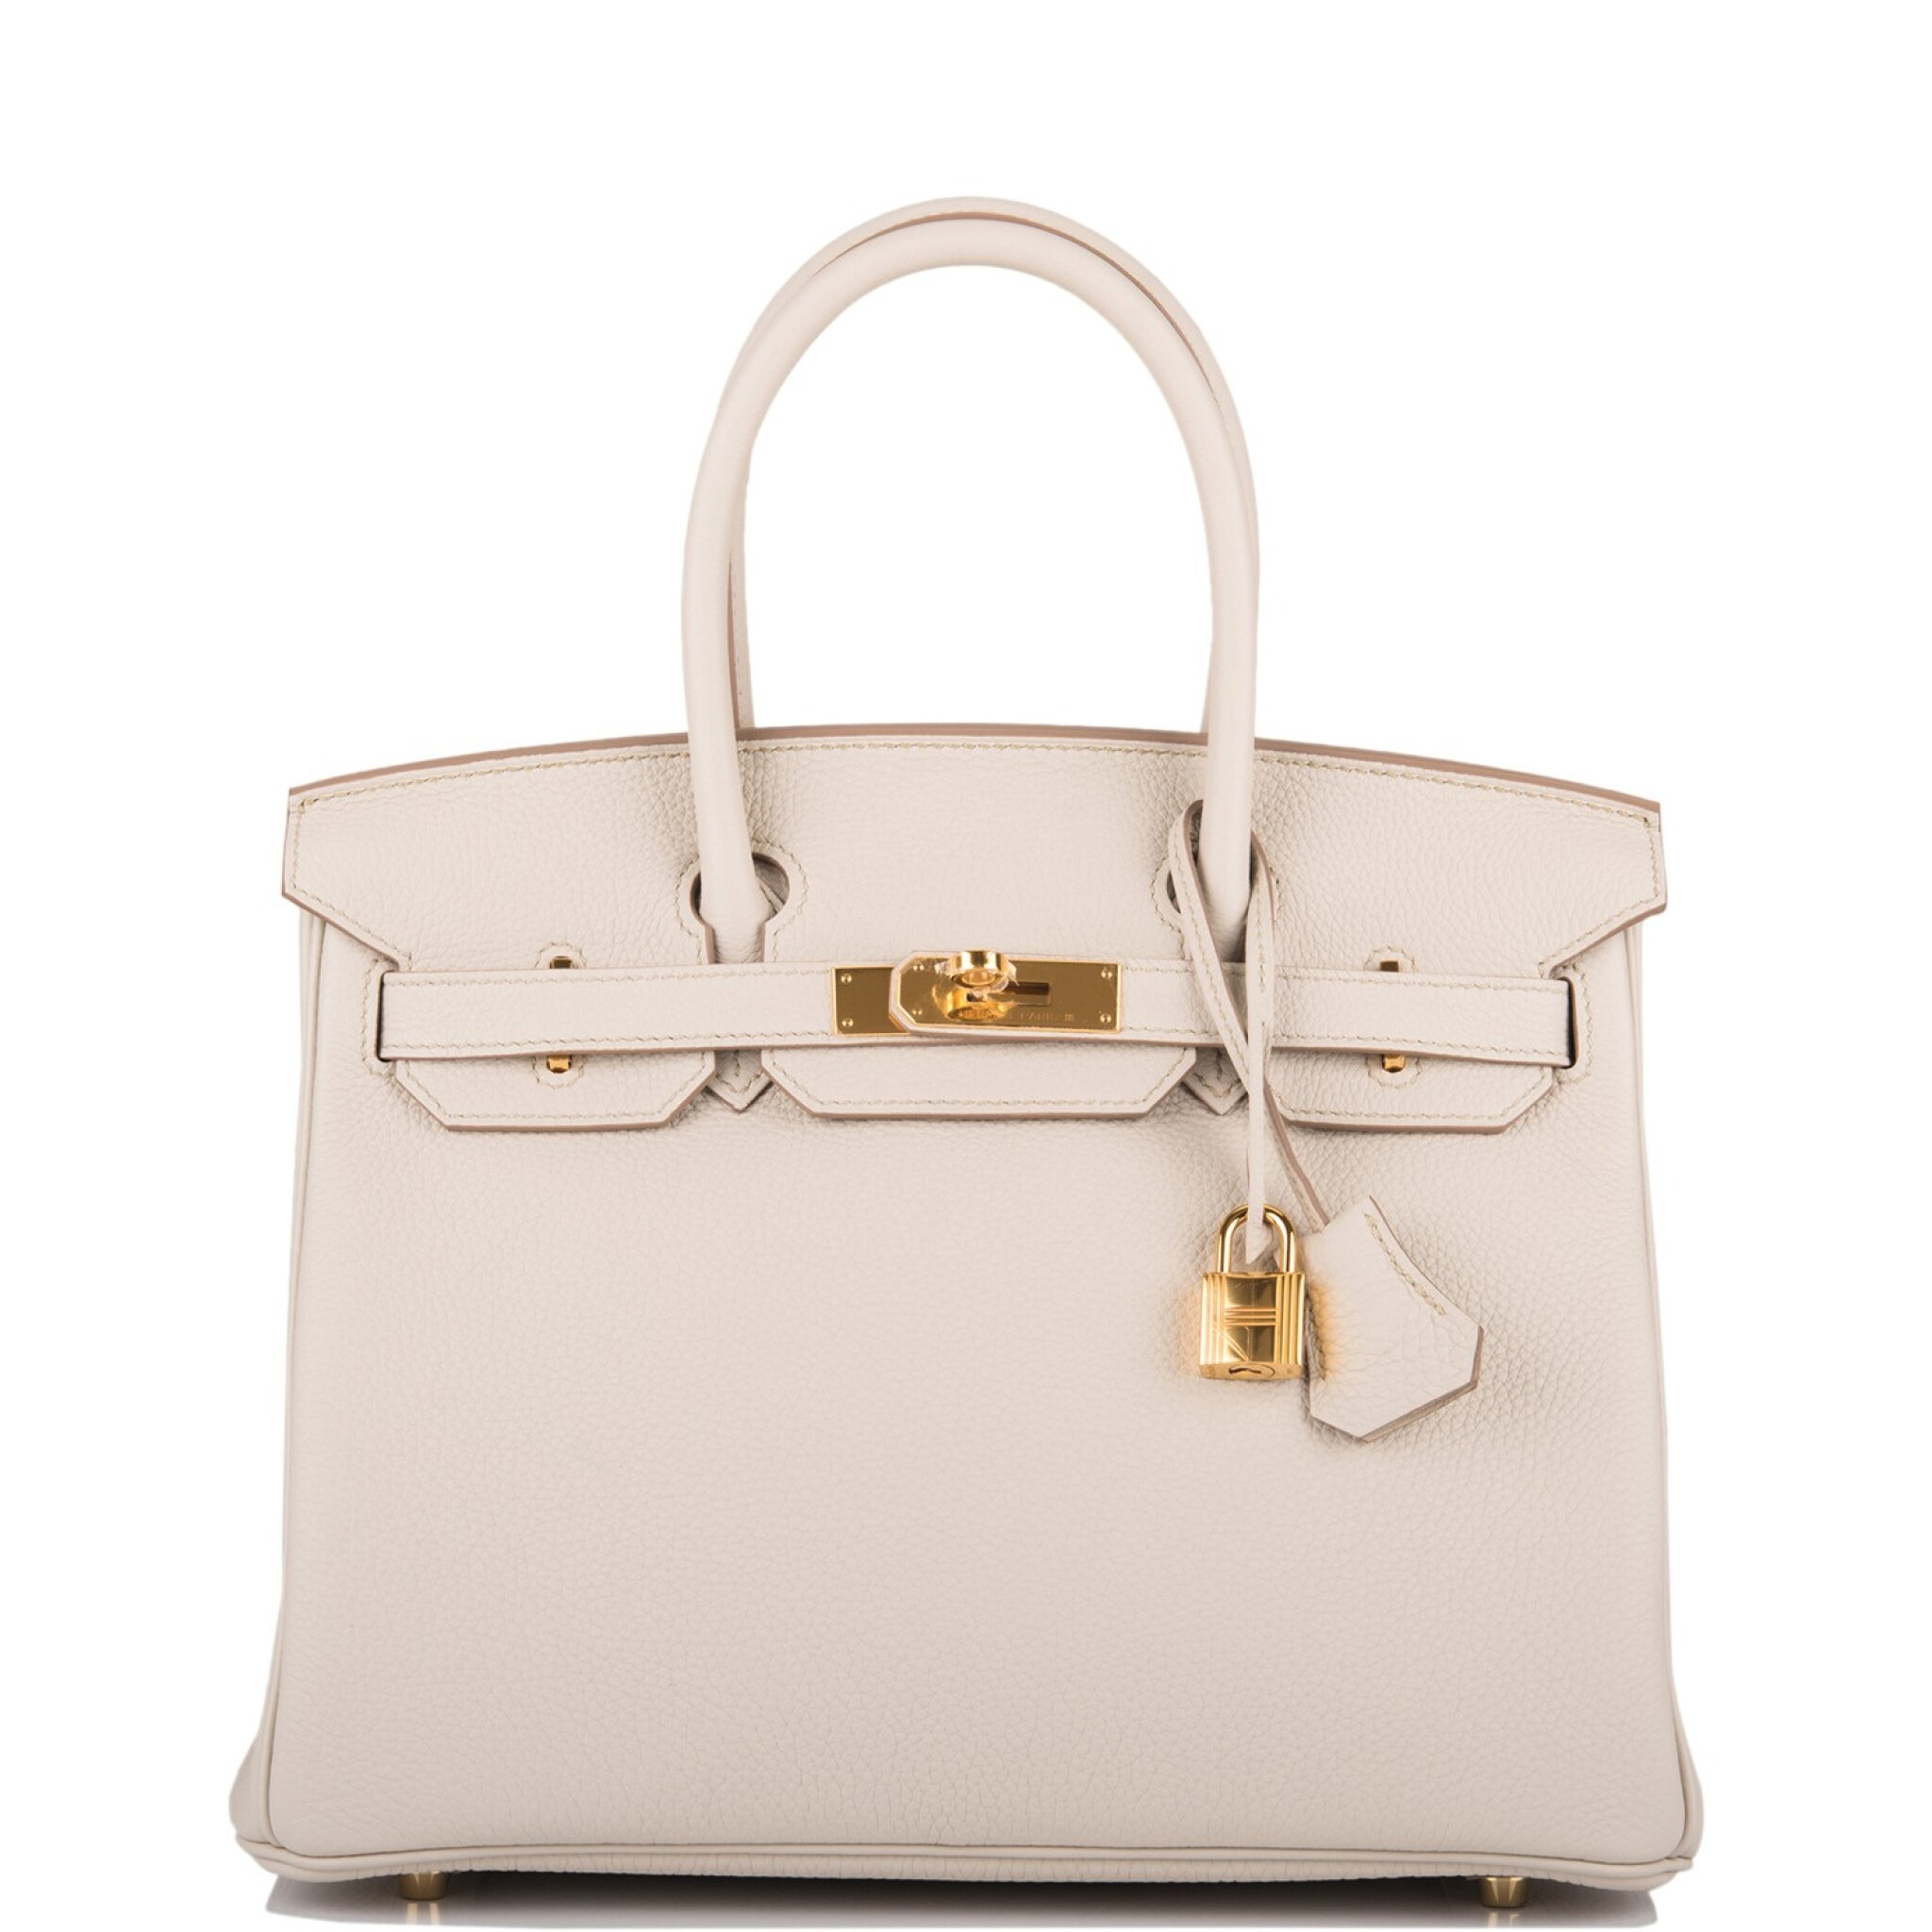 View full screen - View 1 of Lot 5. Hermès Beton Birkin 30cm of Togo Leather with Gold Hardware.